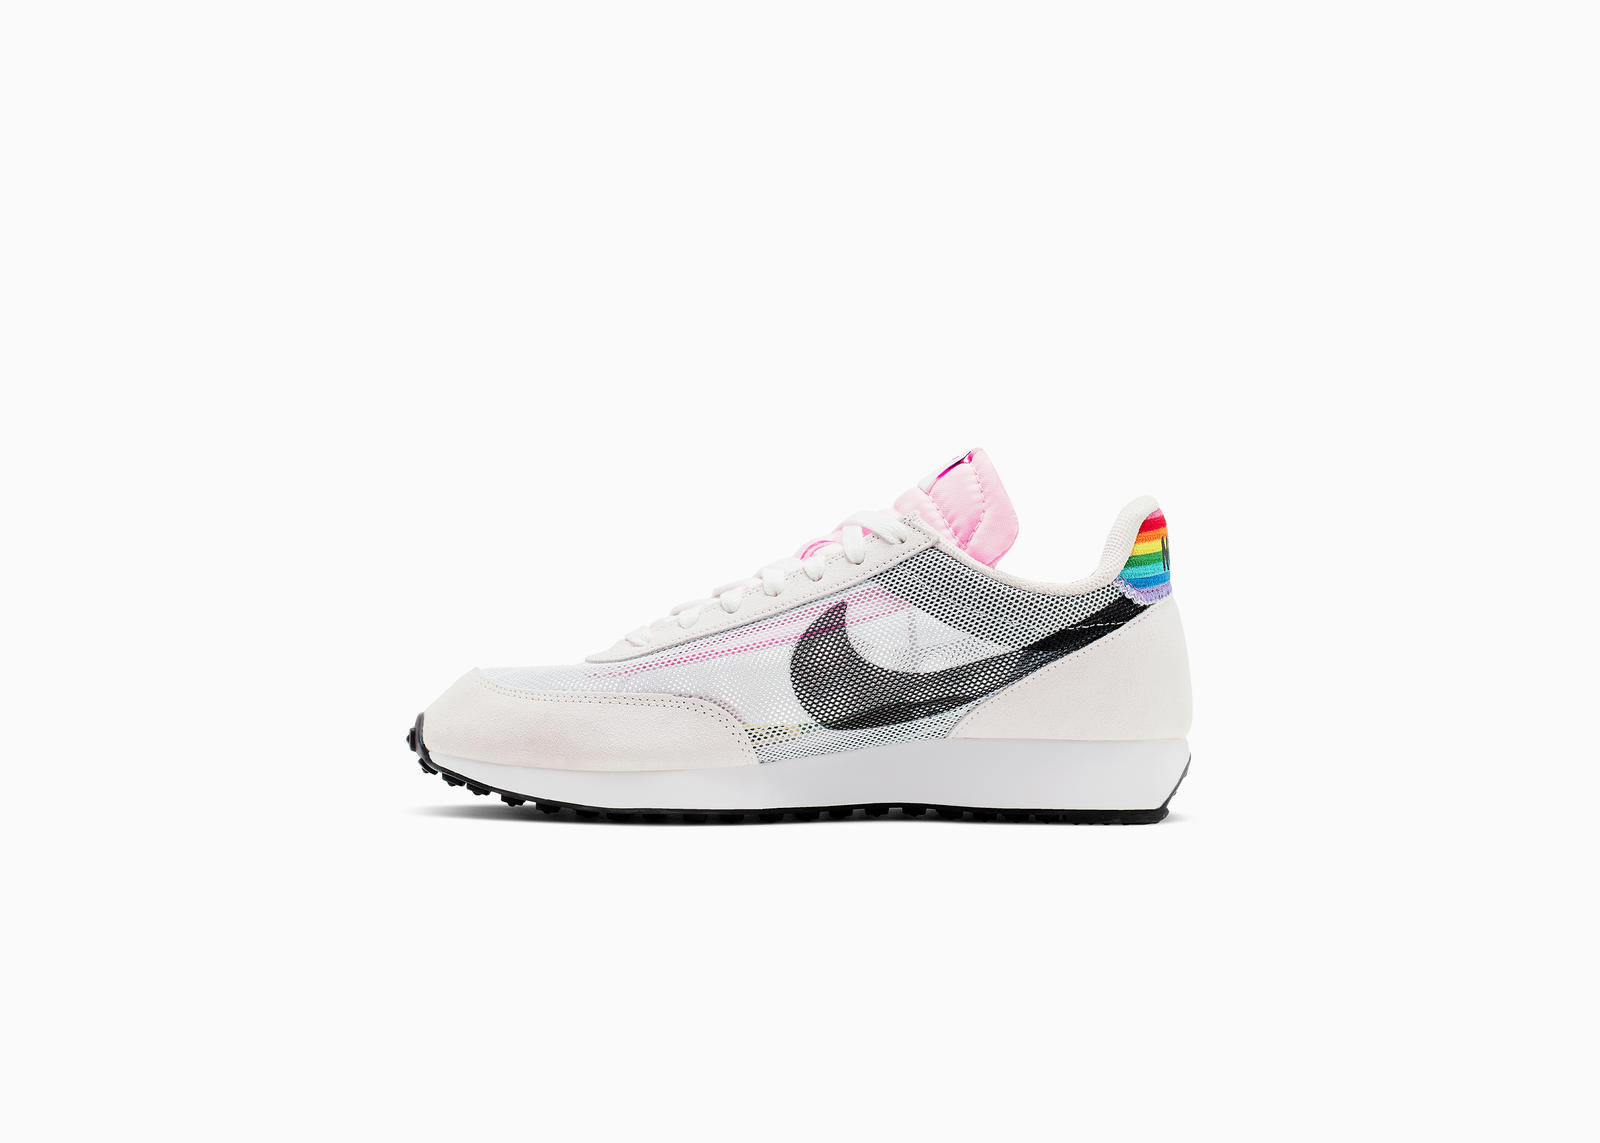 Nike-BETRUE-2019-Collection-1_88099